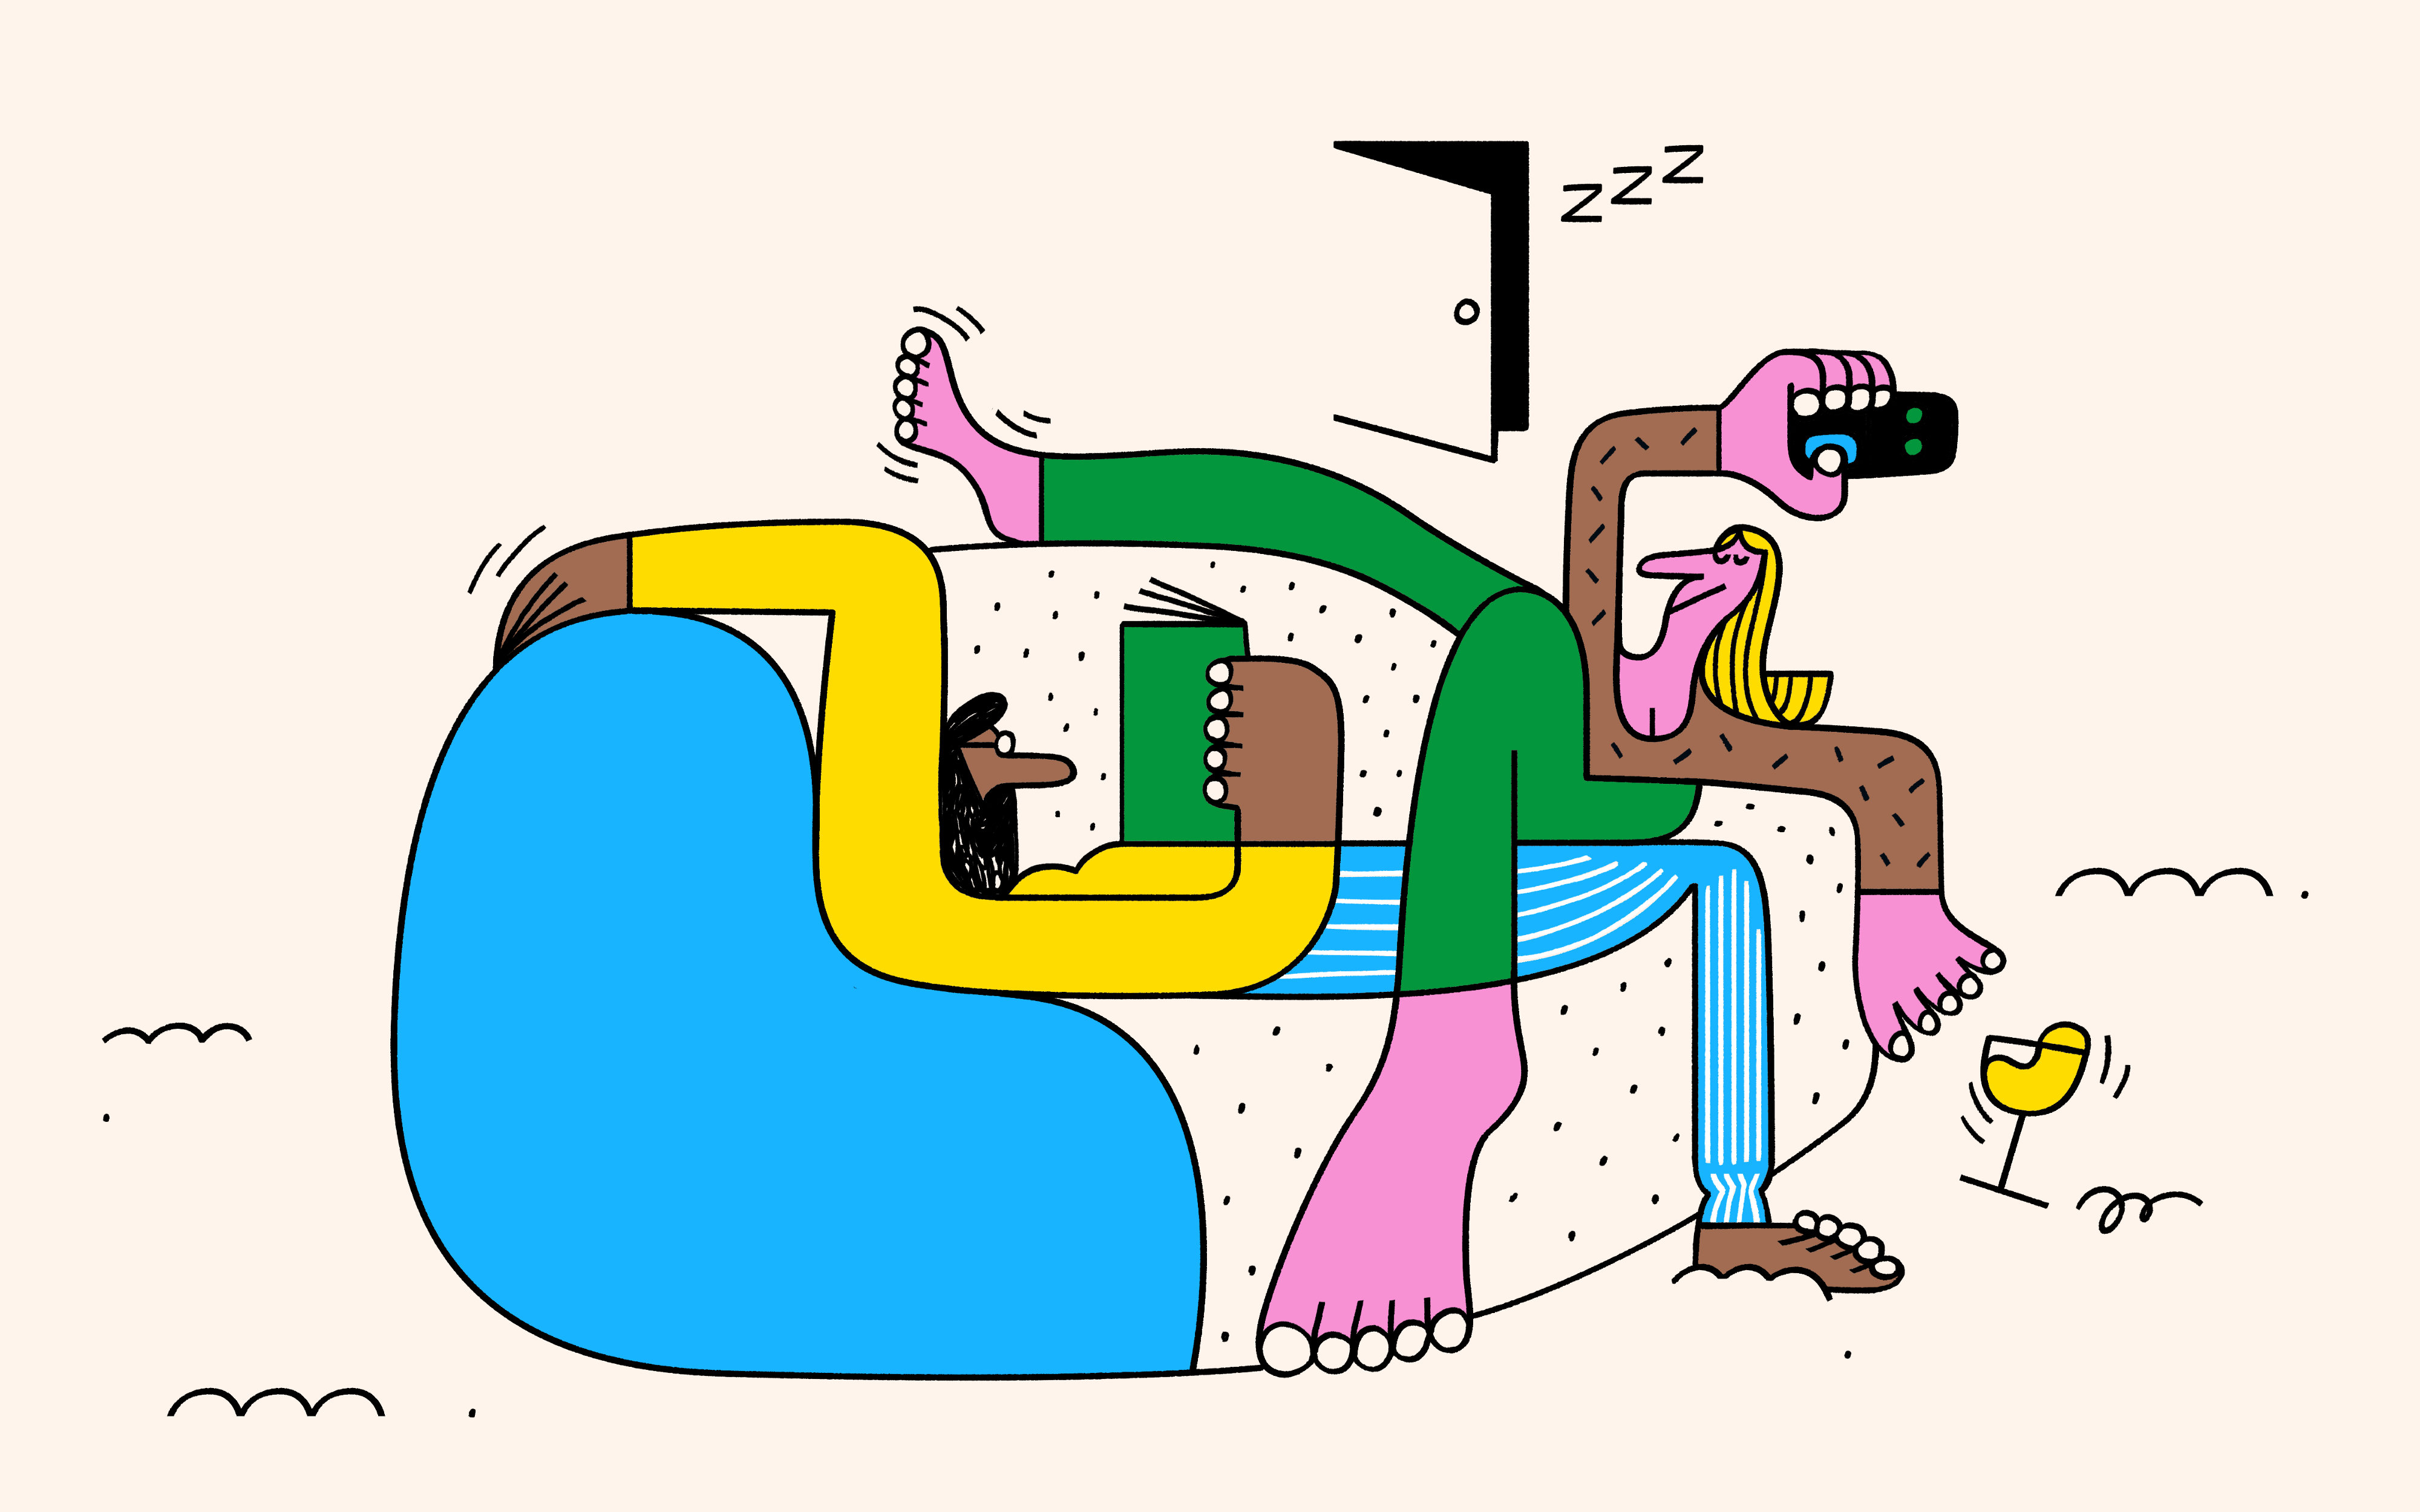 An illustration of two people laying on a sofa, one reading a book, one holding a TV remote.